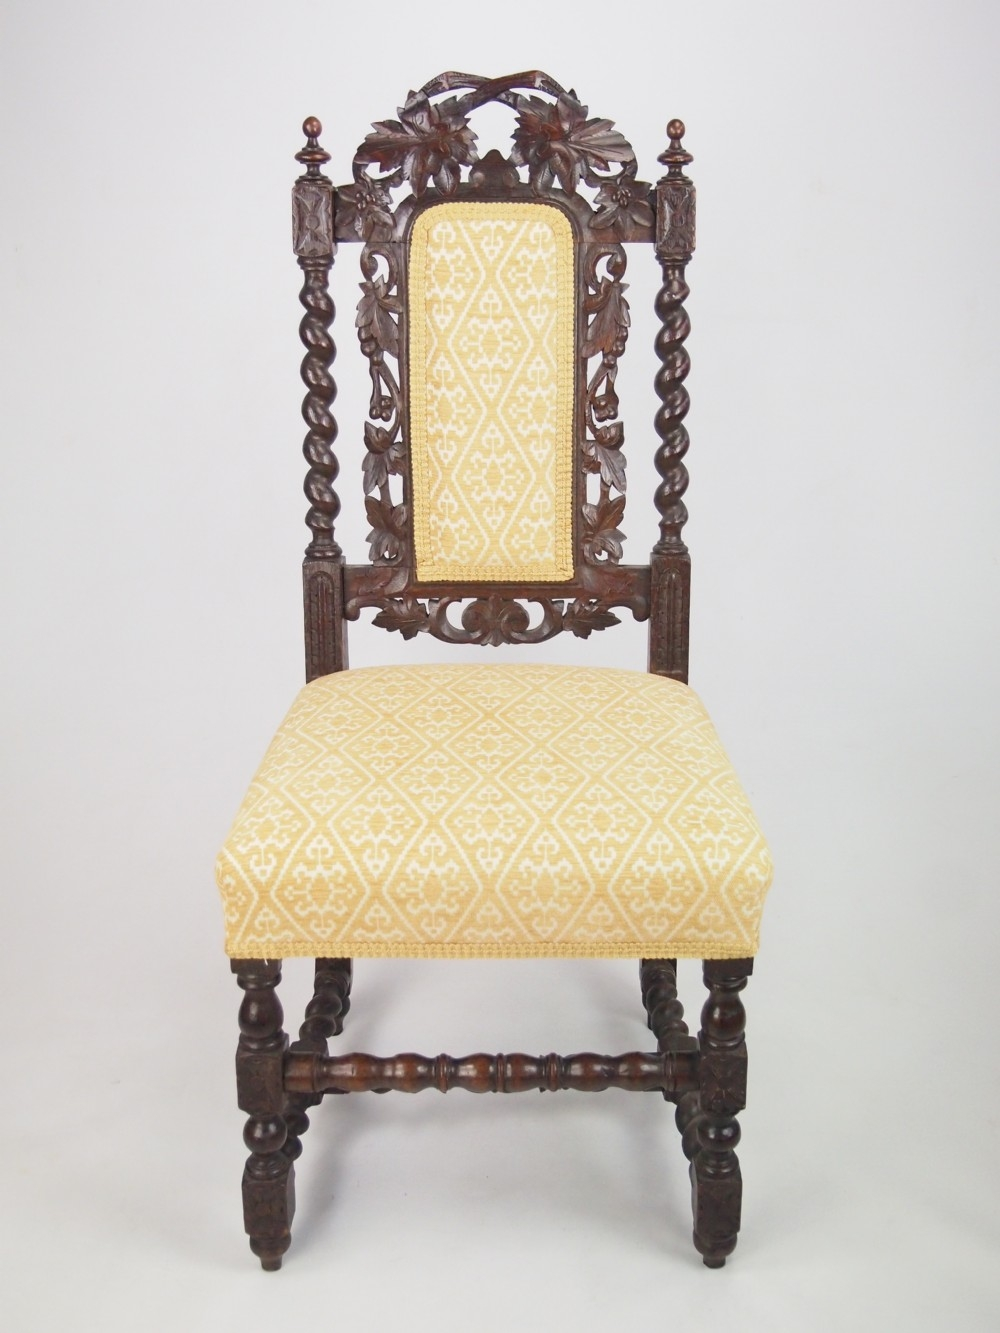 Chairs antique carved chairs antique oak chairs antique gothic chairs & Carved Oak Chairs - Foter